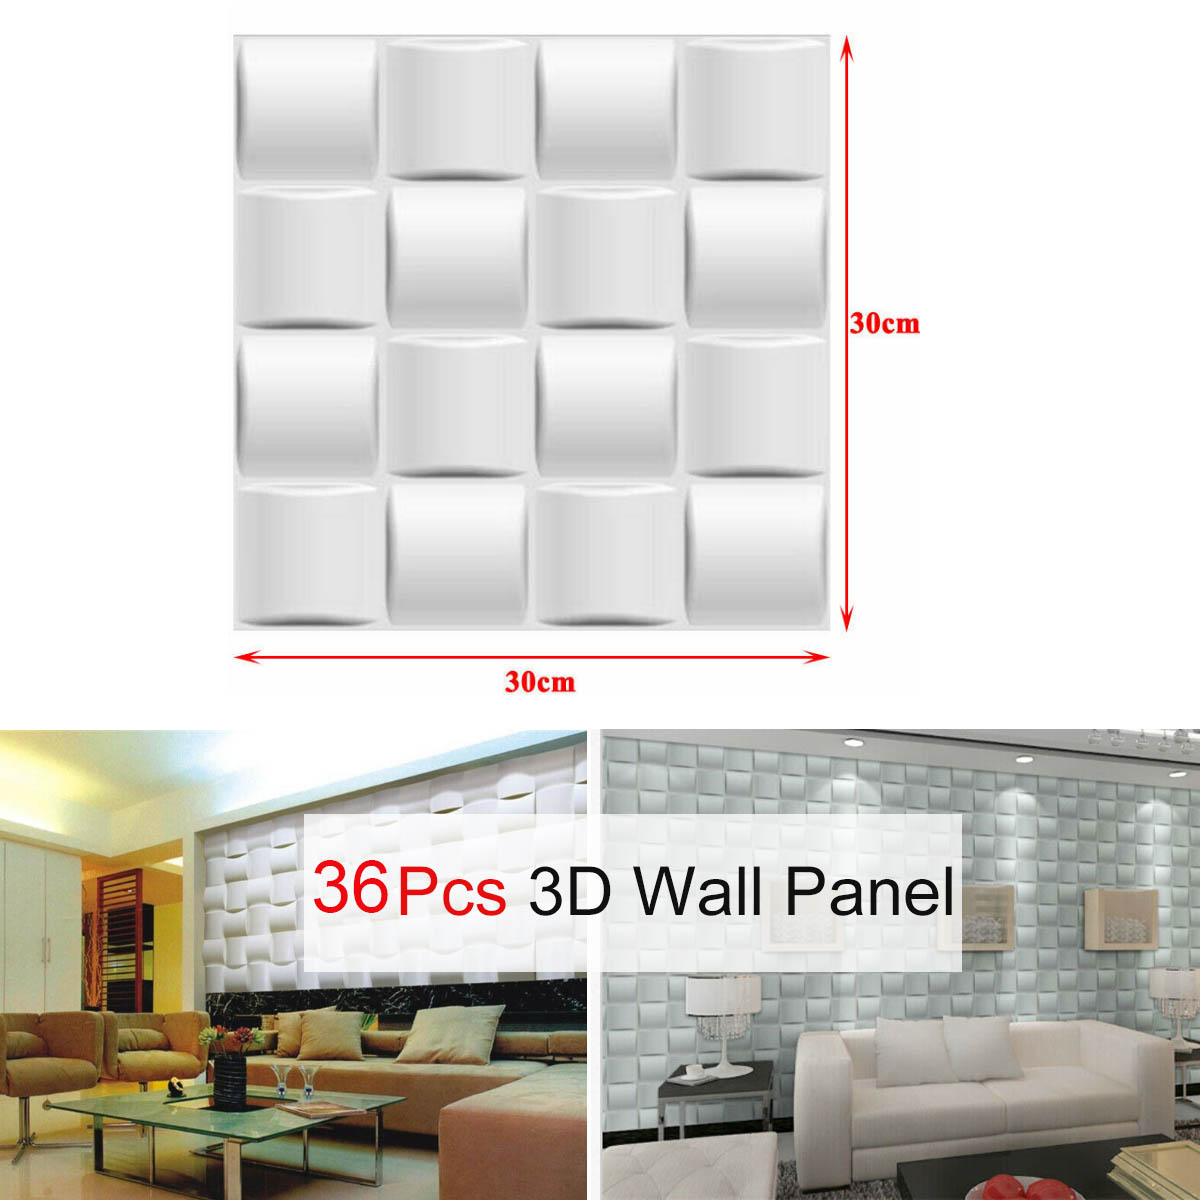 Details About 3d Wall Panel Pvc 3d Home Wall Decoration Diy Wall Decor White 36pcs Set 11 81